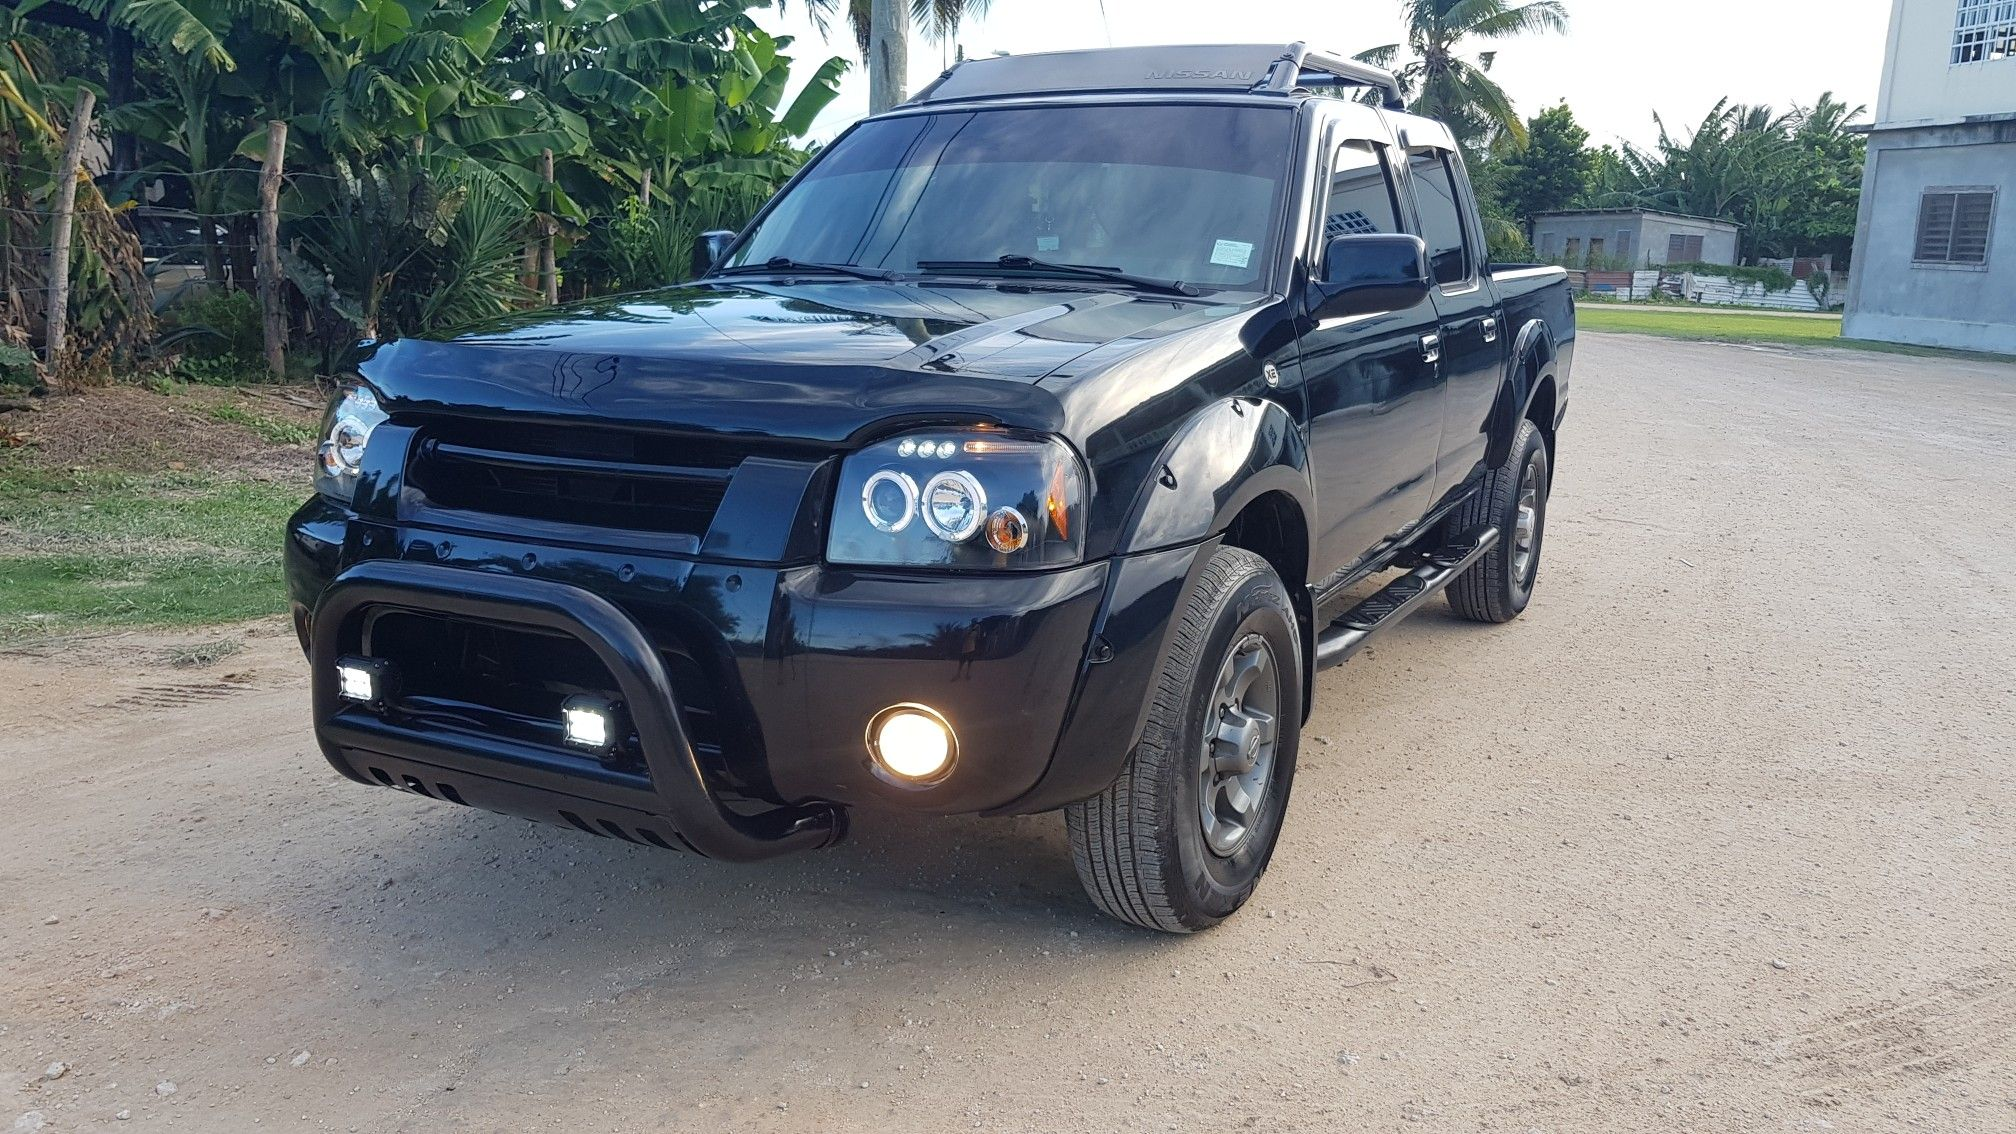 My Customized 2001 Nissan Frontier Xe Manual Trans With Images